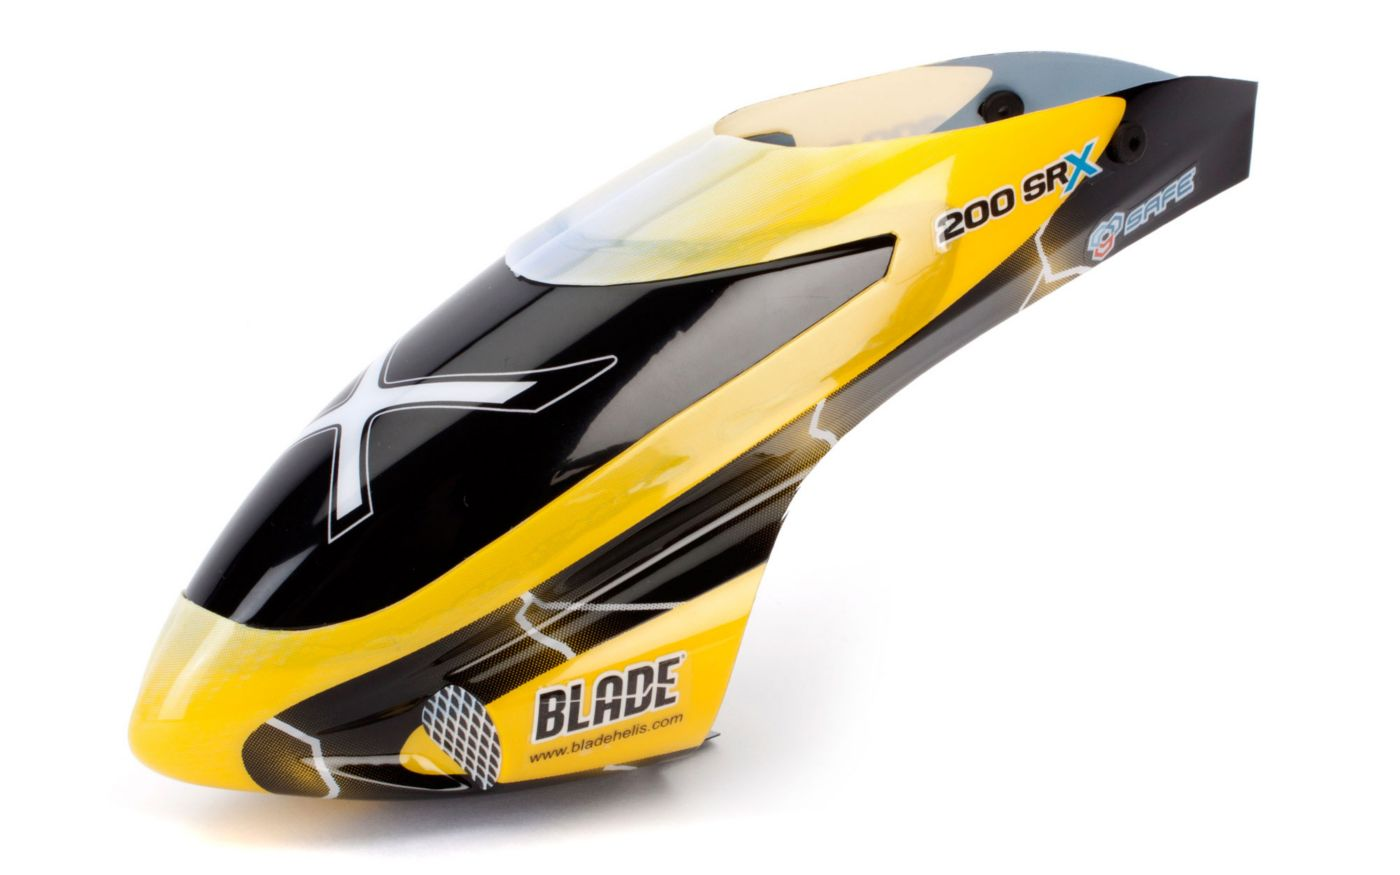 Blade Canopy for 200 SR X